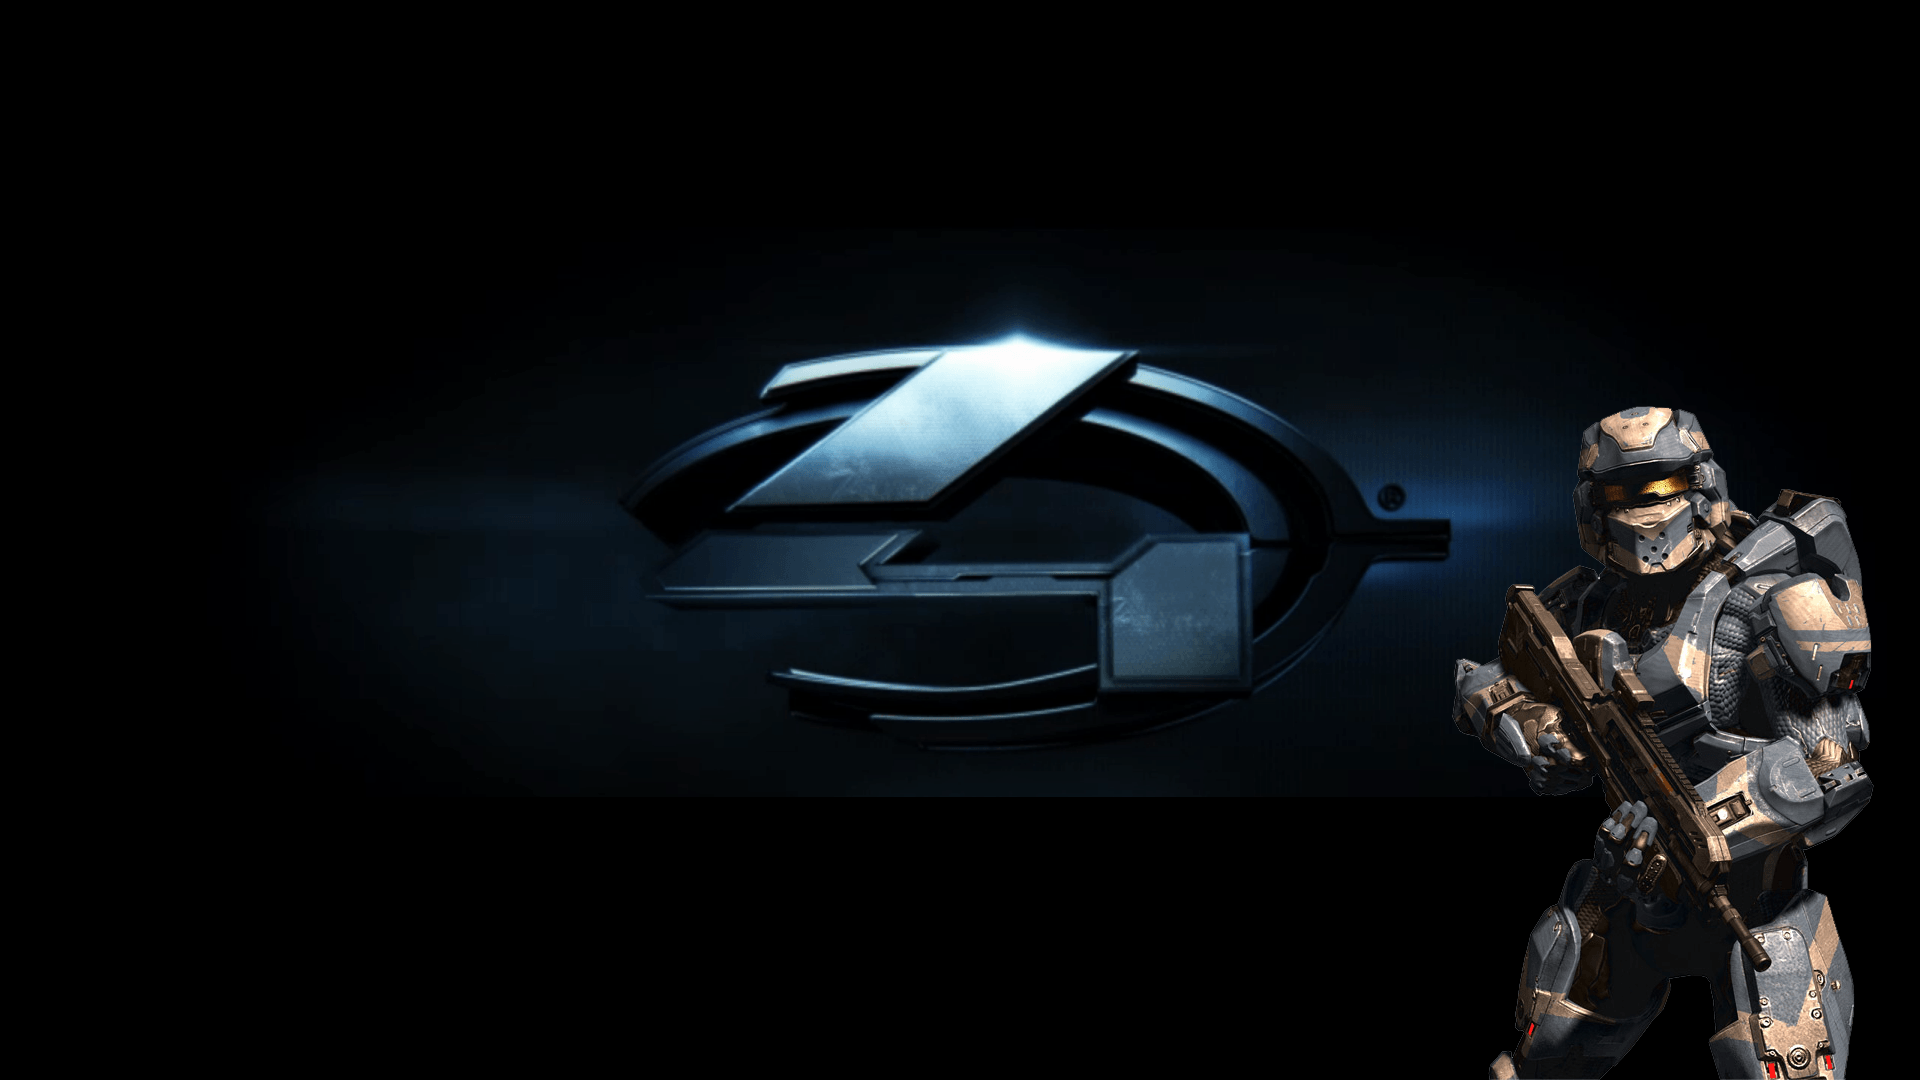 halo unsc wallpaper phone - photo #29